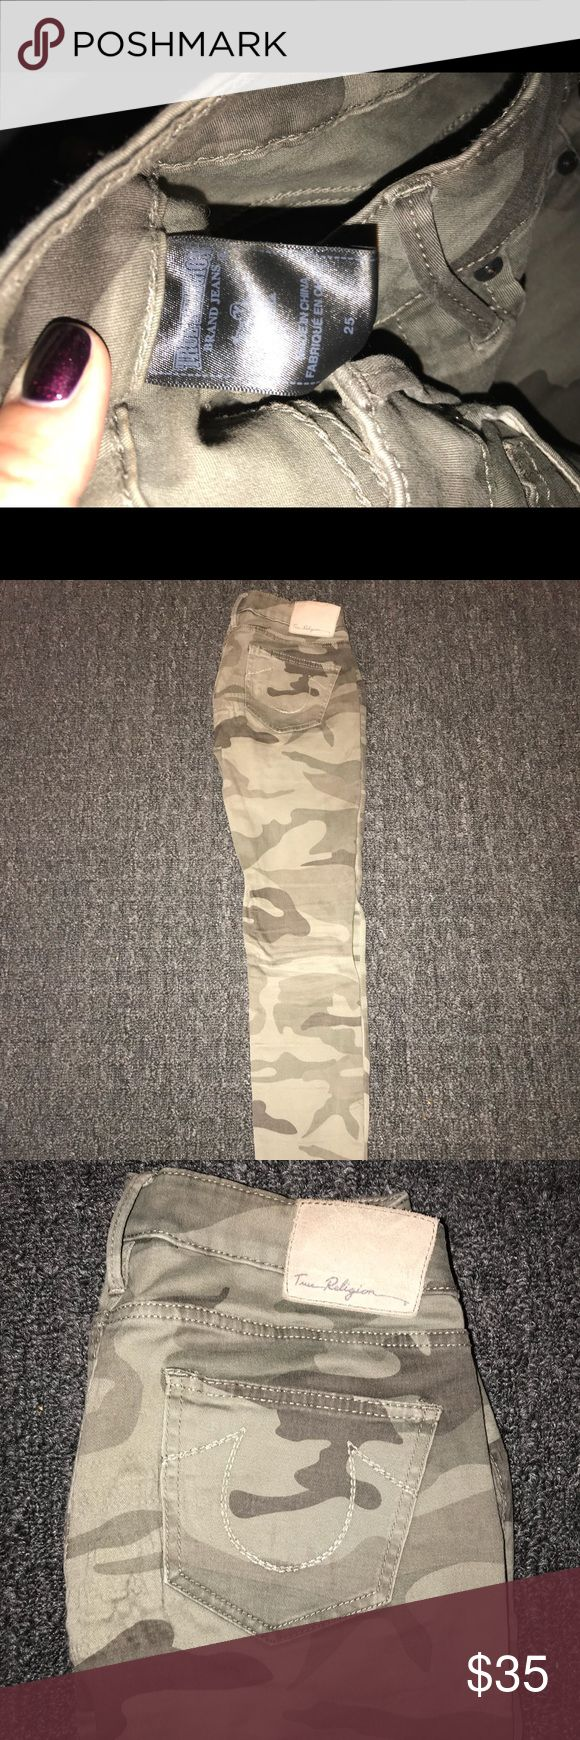 True Religion Camo skinny jeans True Religion Camo skinny jeans True Religion Pants Skinny